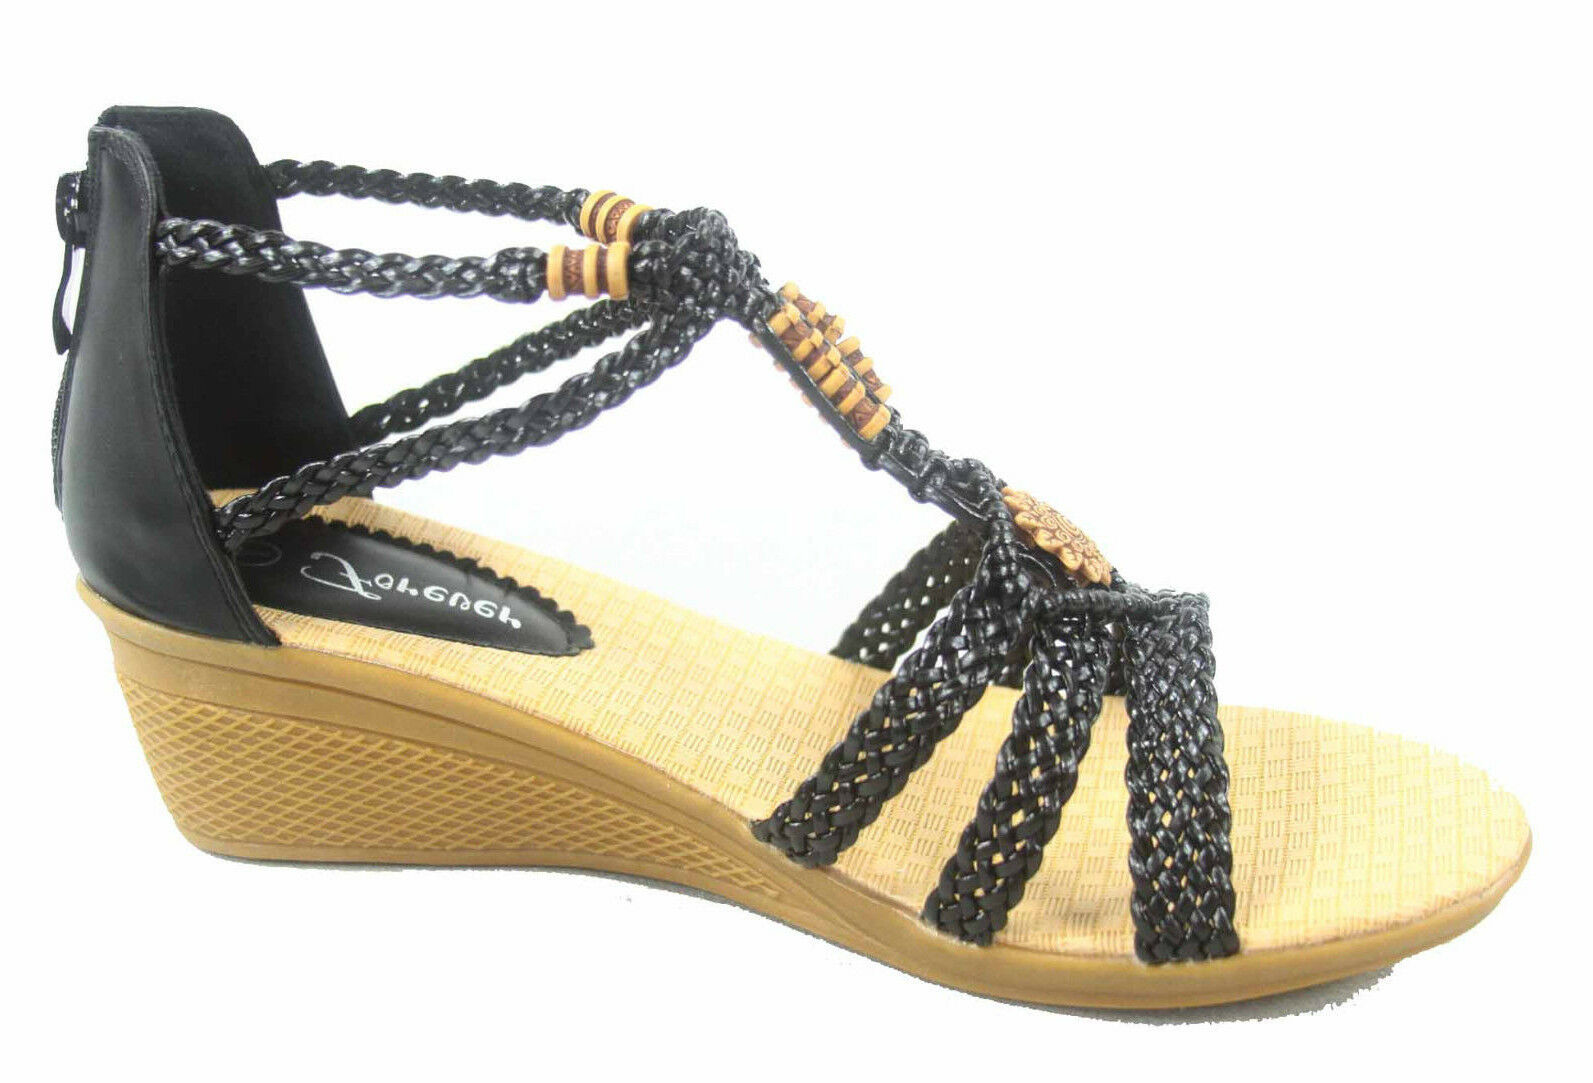 Women's Braided Low Wedge Flat Heel Open Toe Ankle Strap -10 Sandal Shoes Size 6 -10 Strap 12fc12